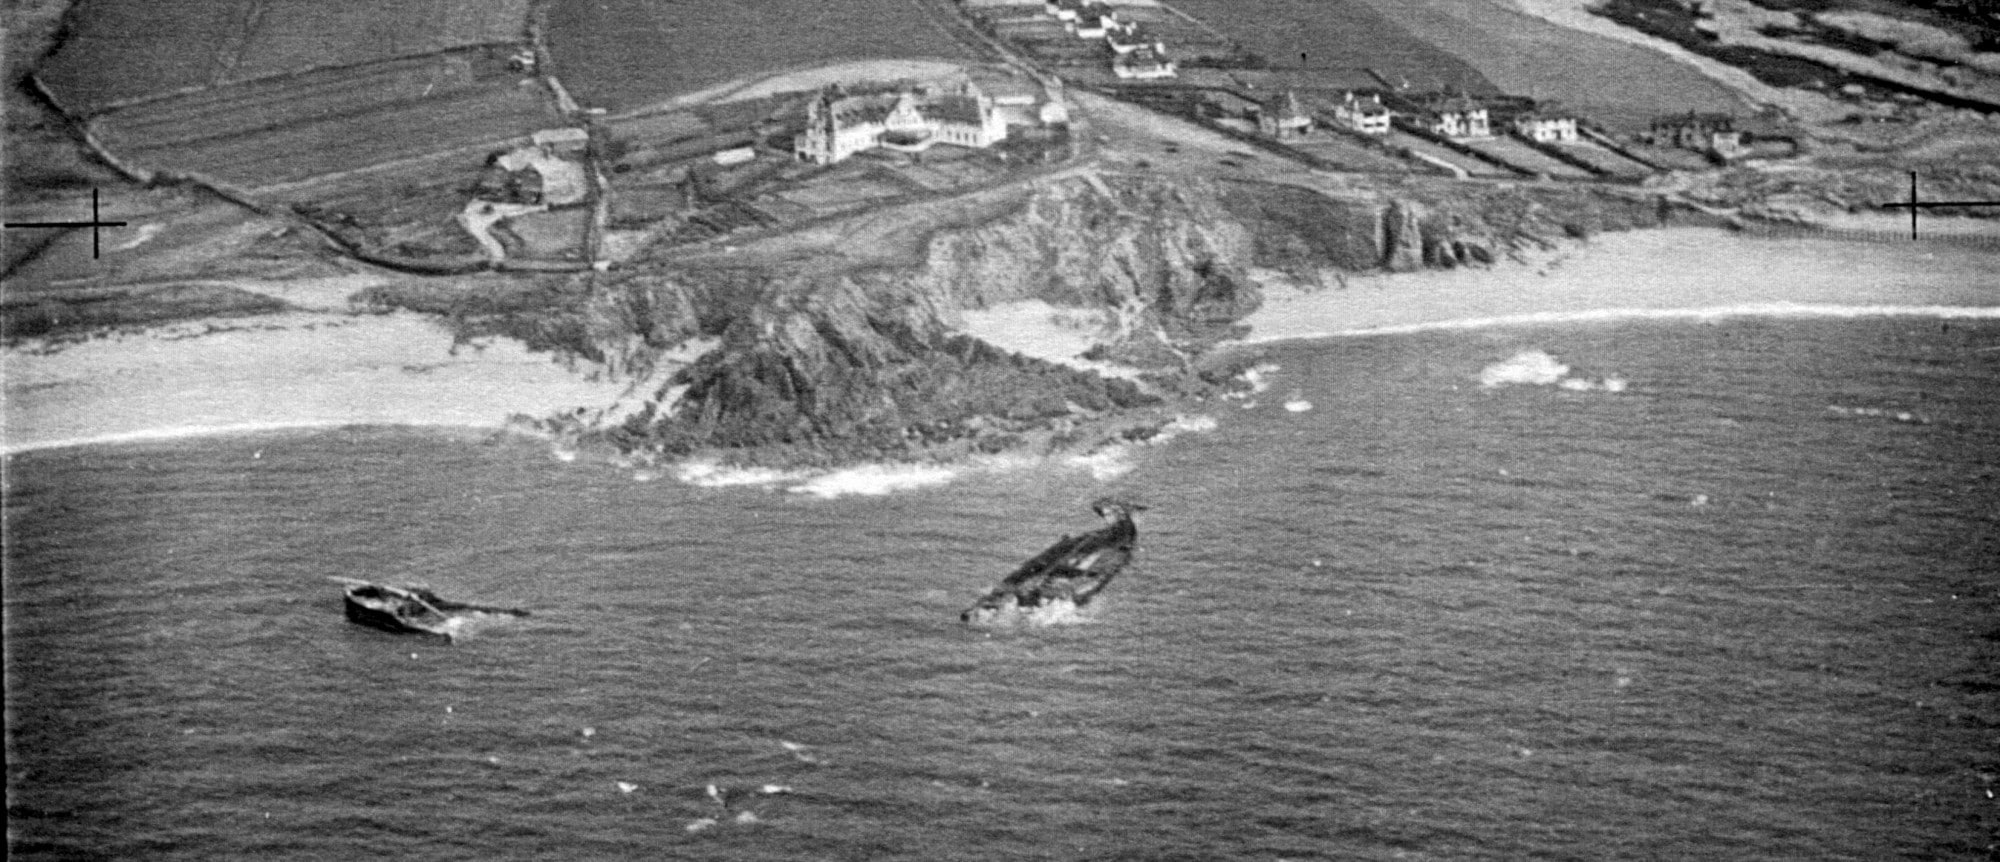 The Wreck of the Louis Sheid three years after it was wrecked off Thurlestone Sand. SX 6742/4 MSO 31279/PO-3092 12-FEB-1942. Historic England (RAF Photography).